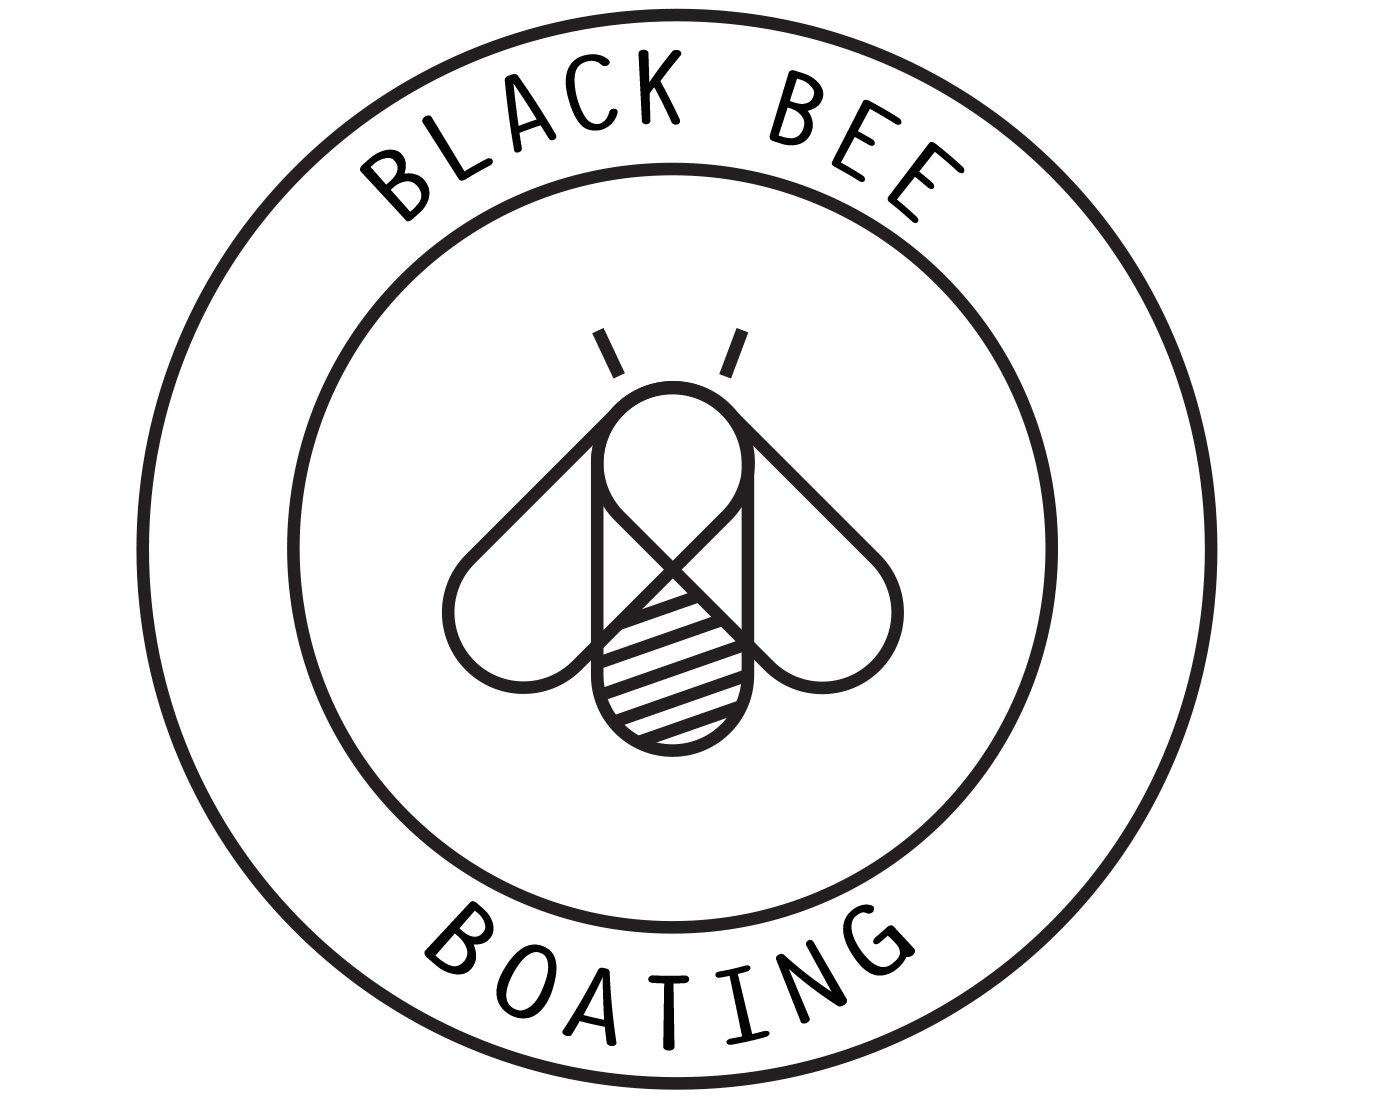 Black Bee Boating